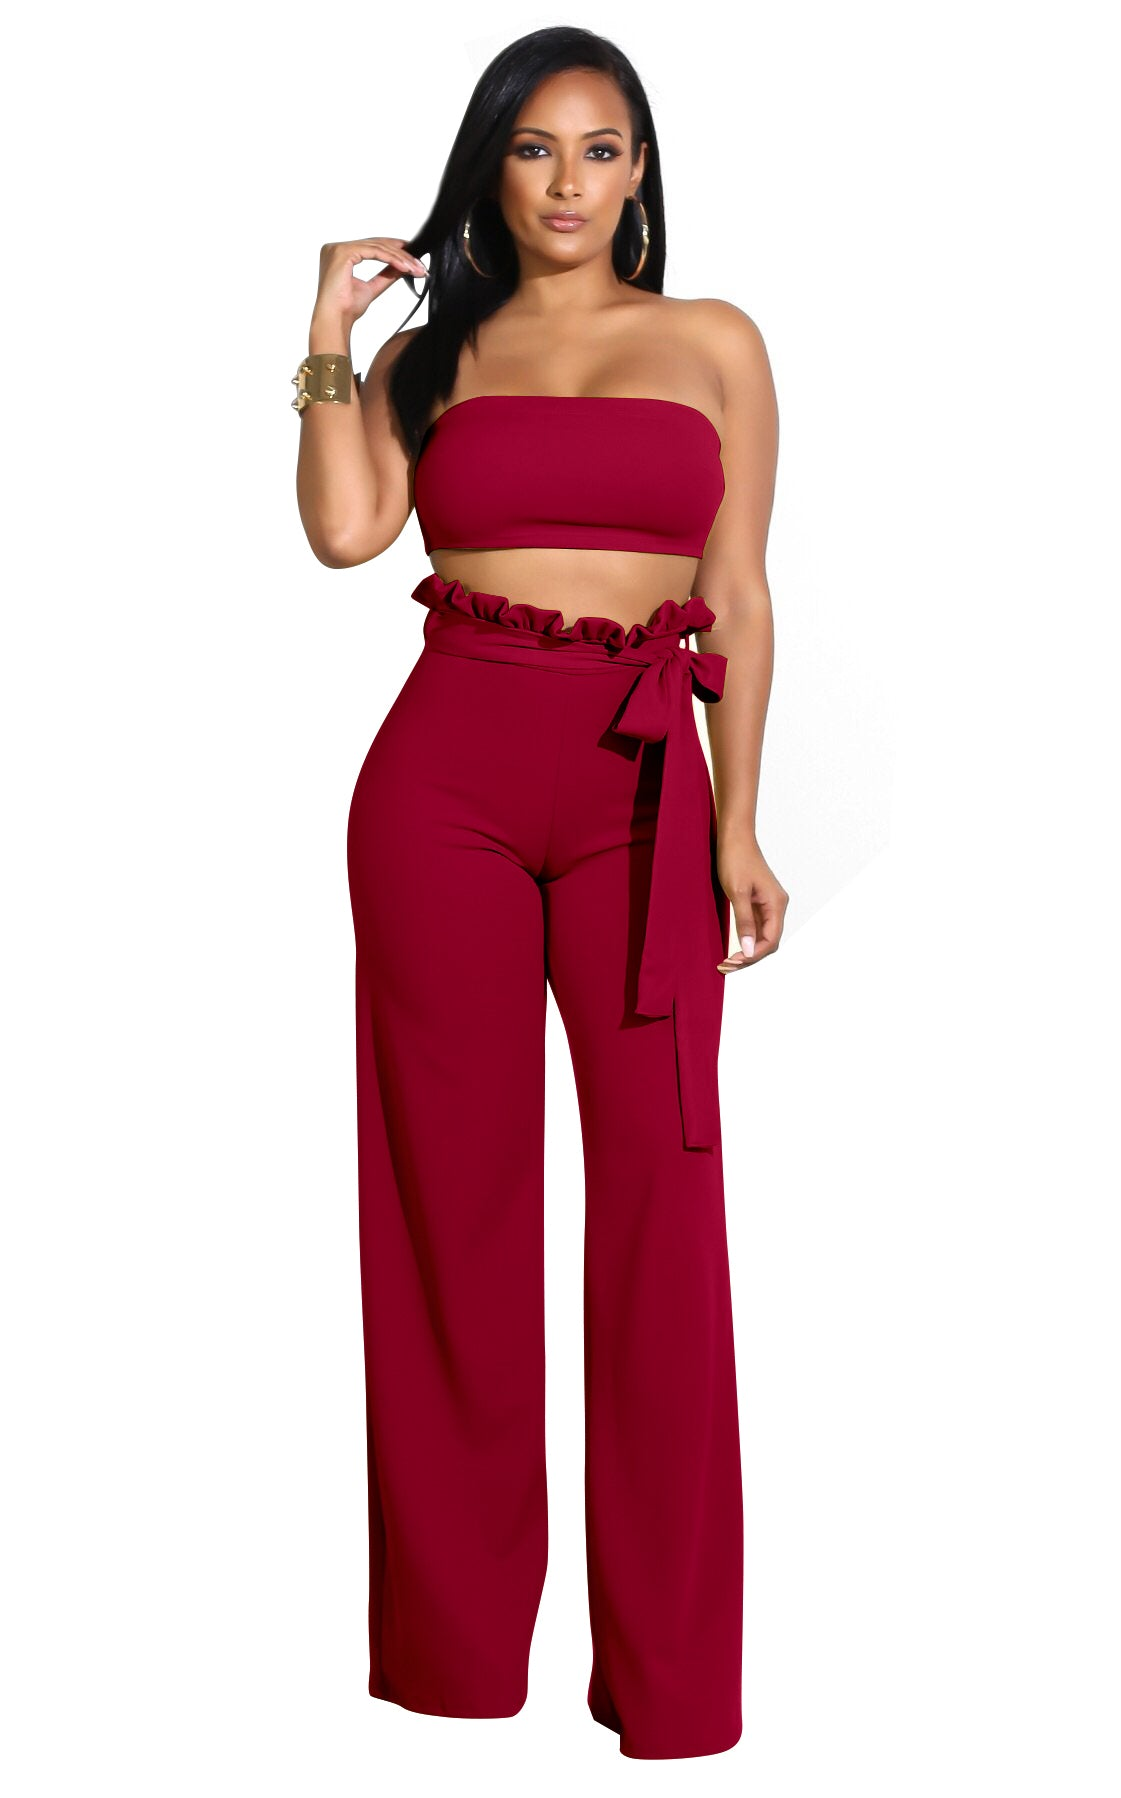 Top Wrapped Women Sexy Expose Navel Two Pieces Suit Wine Red